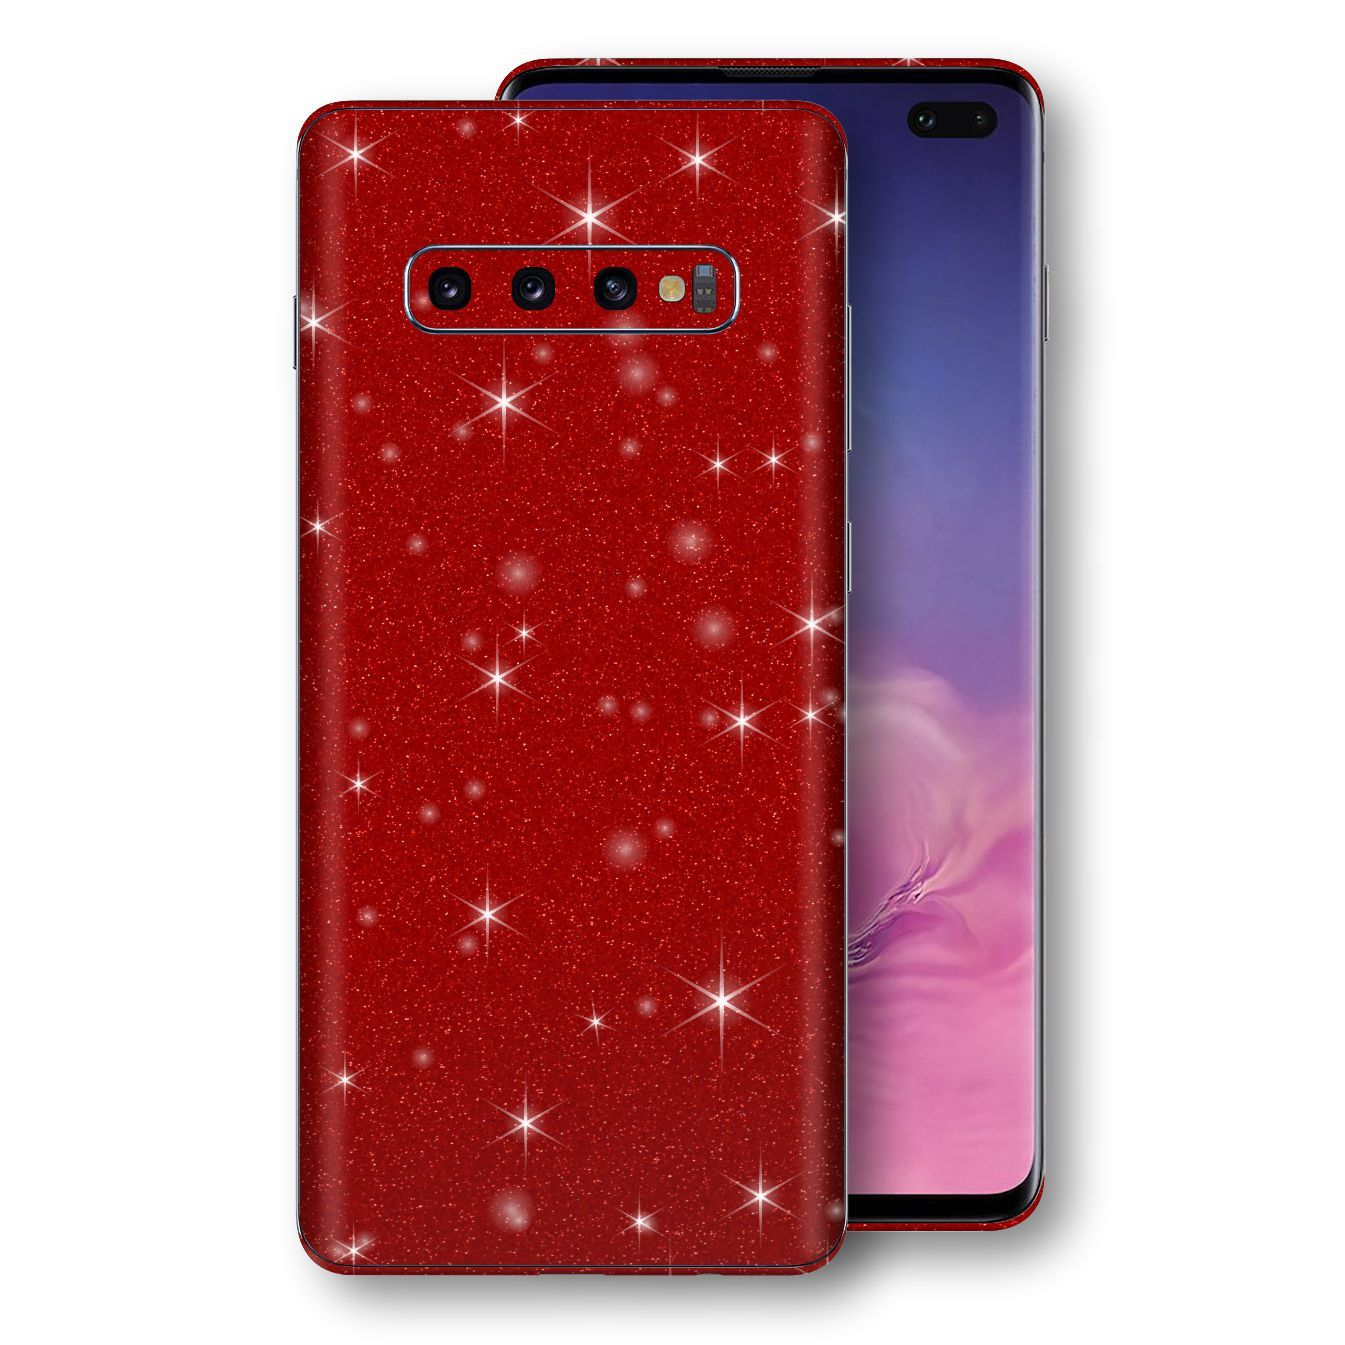 Samsung Galaxy S10+ PLUS Diamond Red Shimmering, Sparkling, Glitter Skin, Decal, Wrap, Protector, Cover by EasySkinz | EasySkinz.com